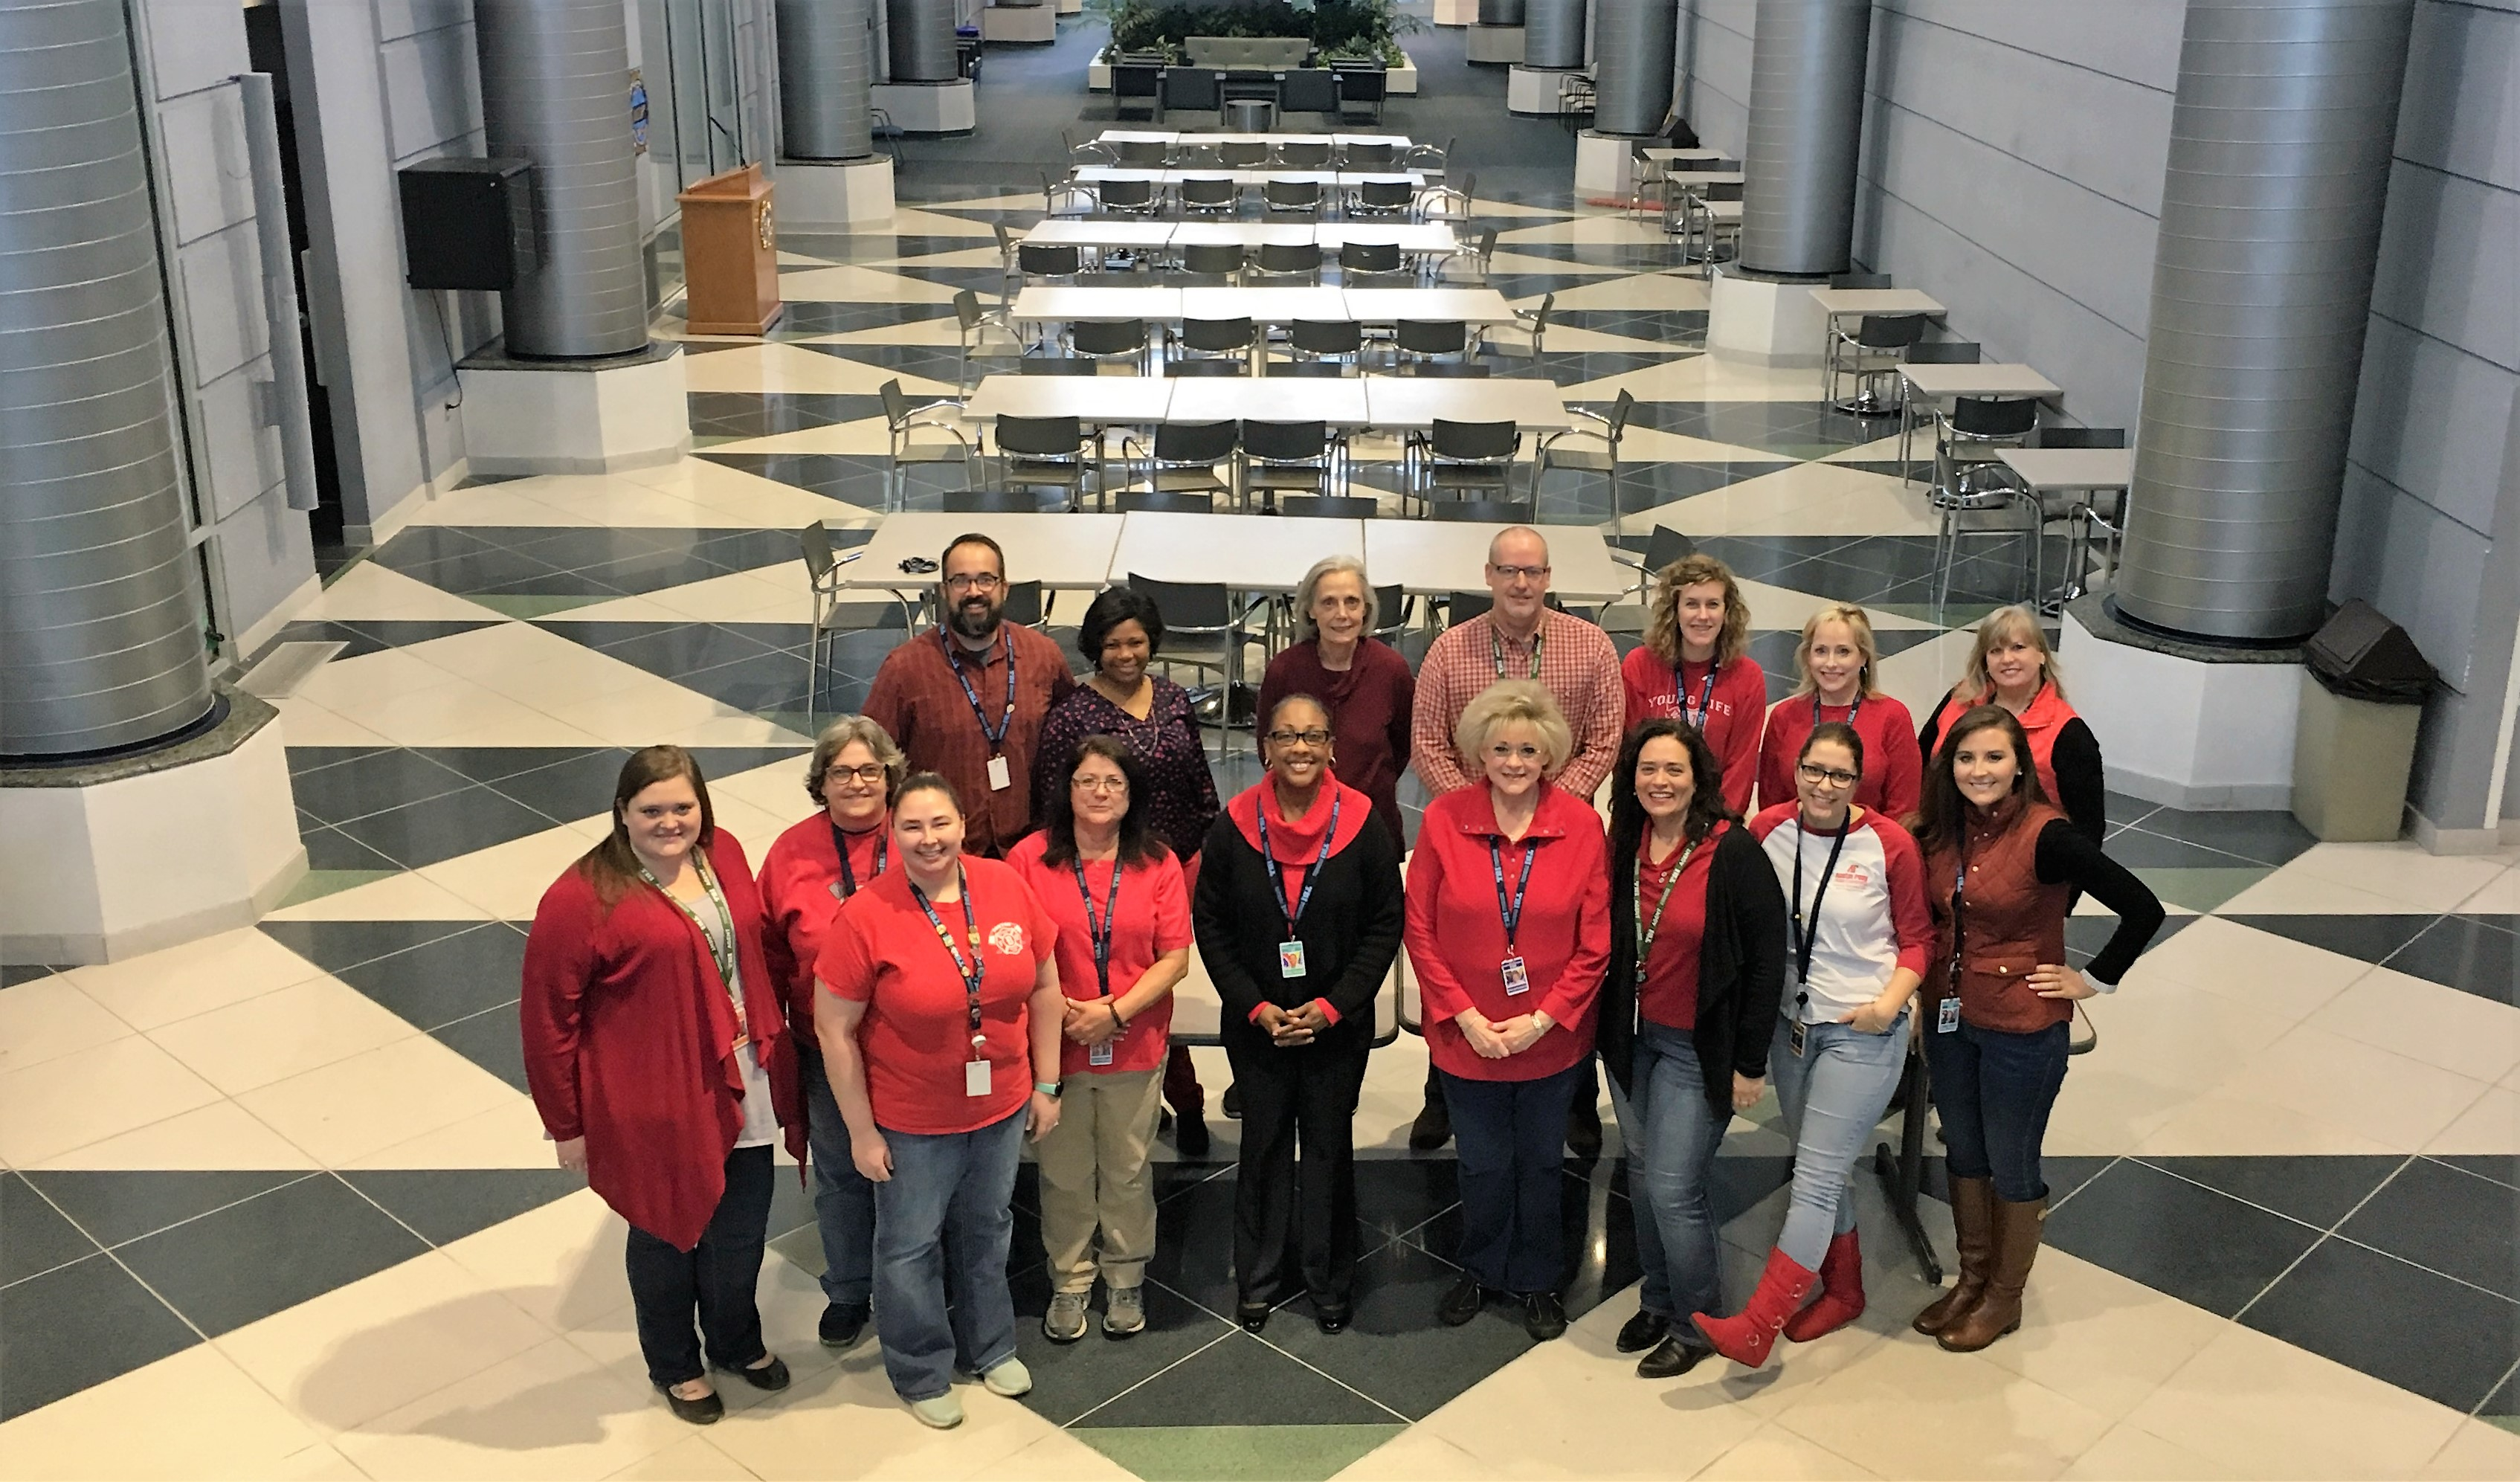 TBI employees wearing red to help raise awareness for heart disease prevention.